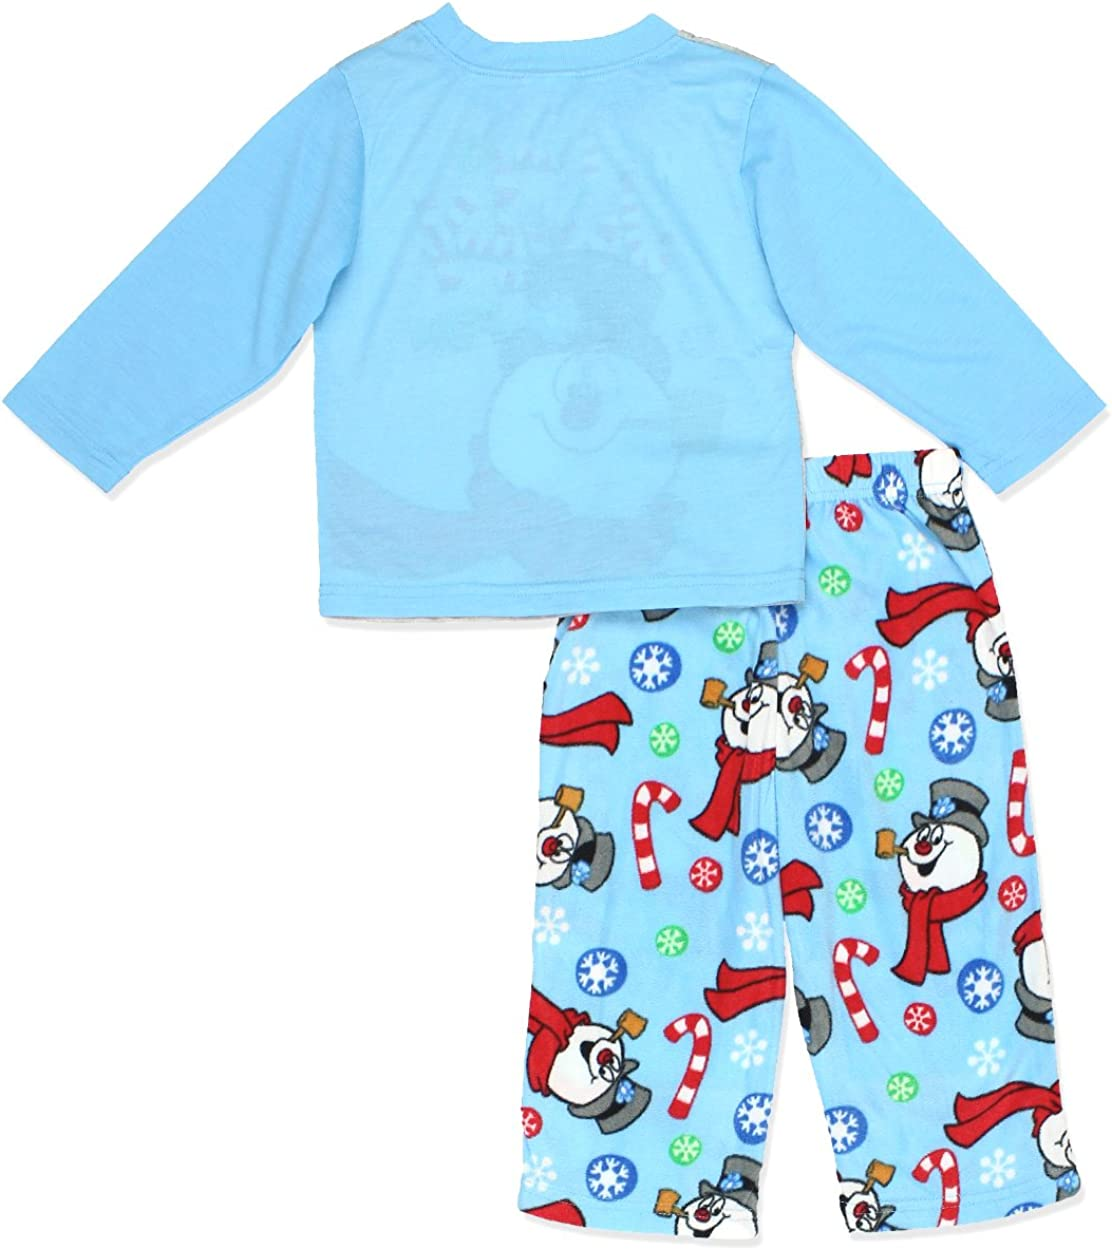 Frosty the Snowman Christmas Holiday Family Sleepwear Pajamas Adult//Kid//Toddler